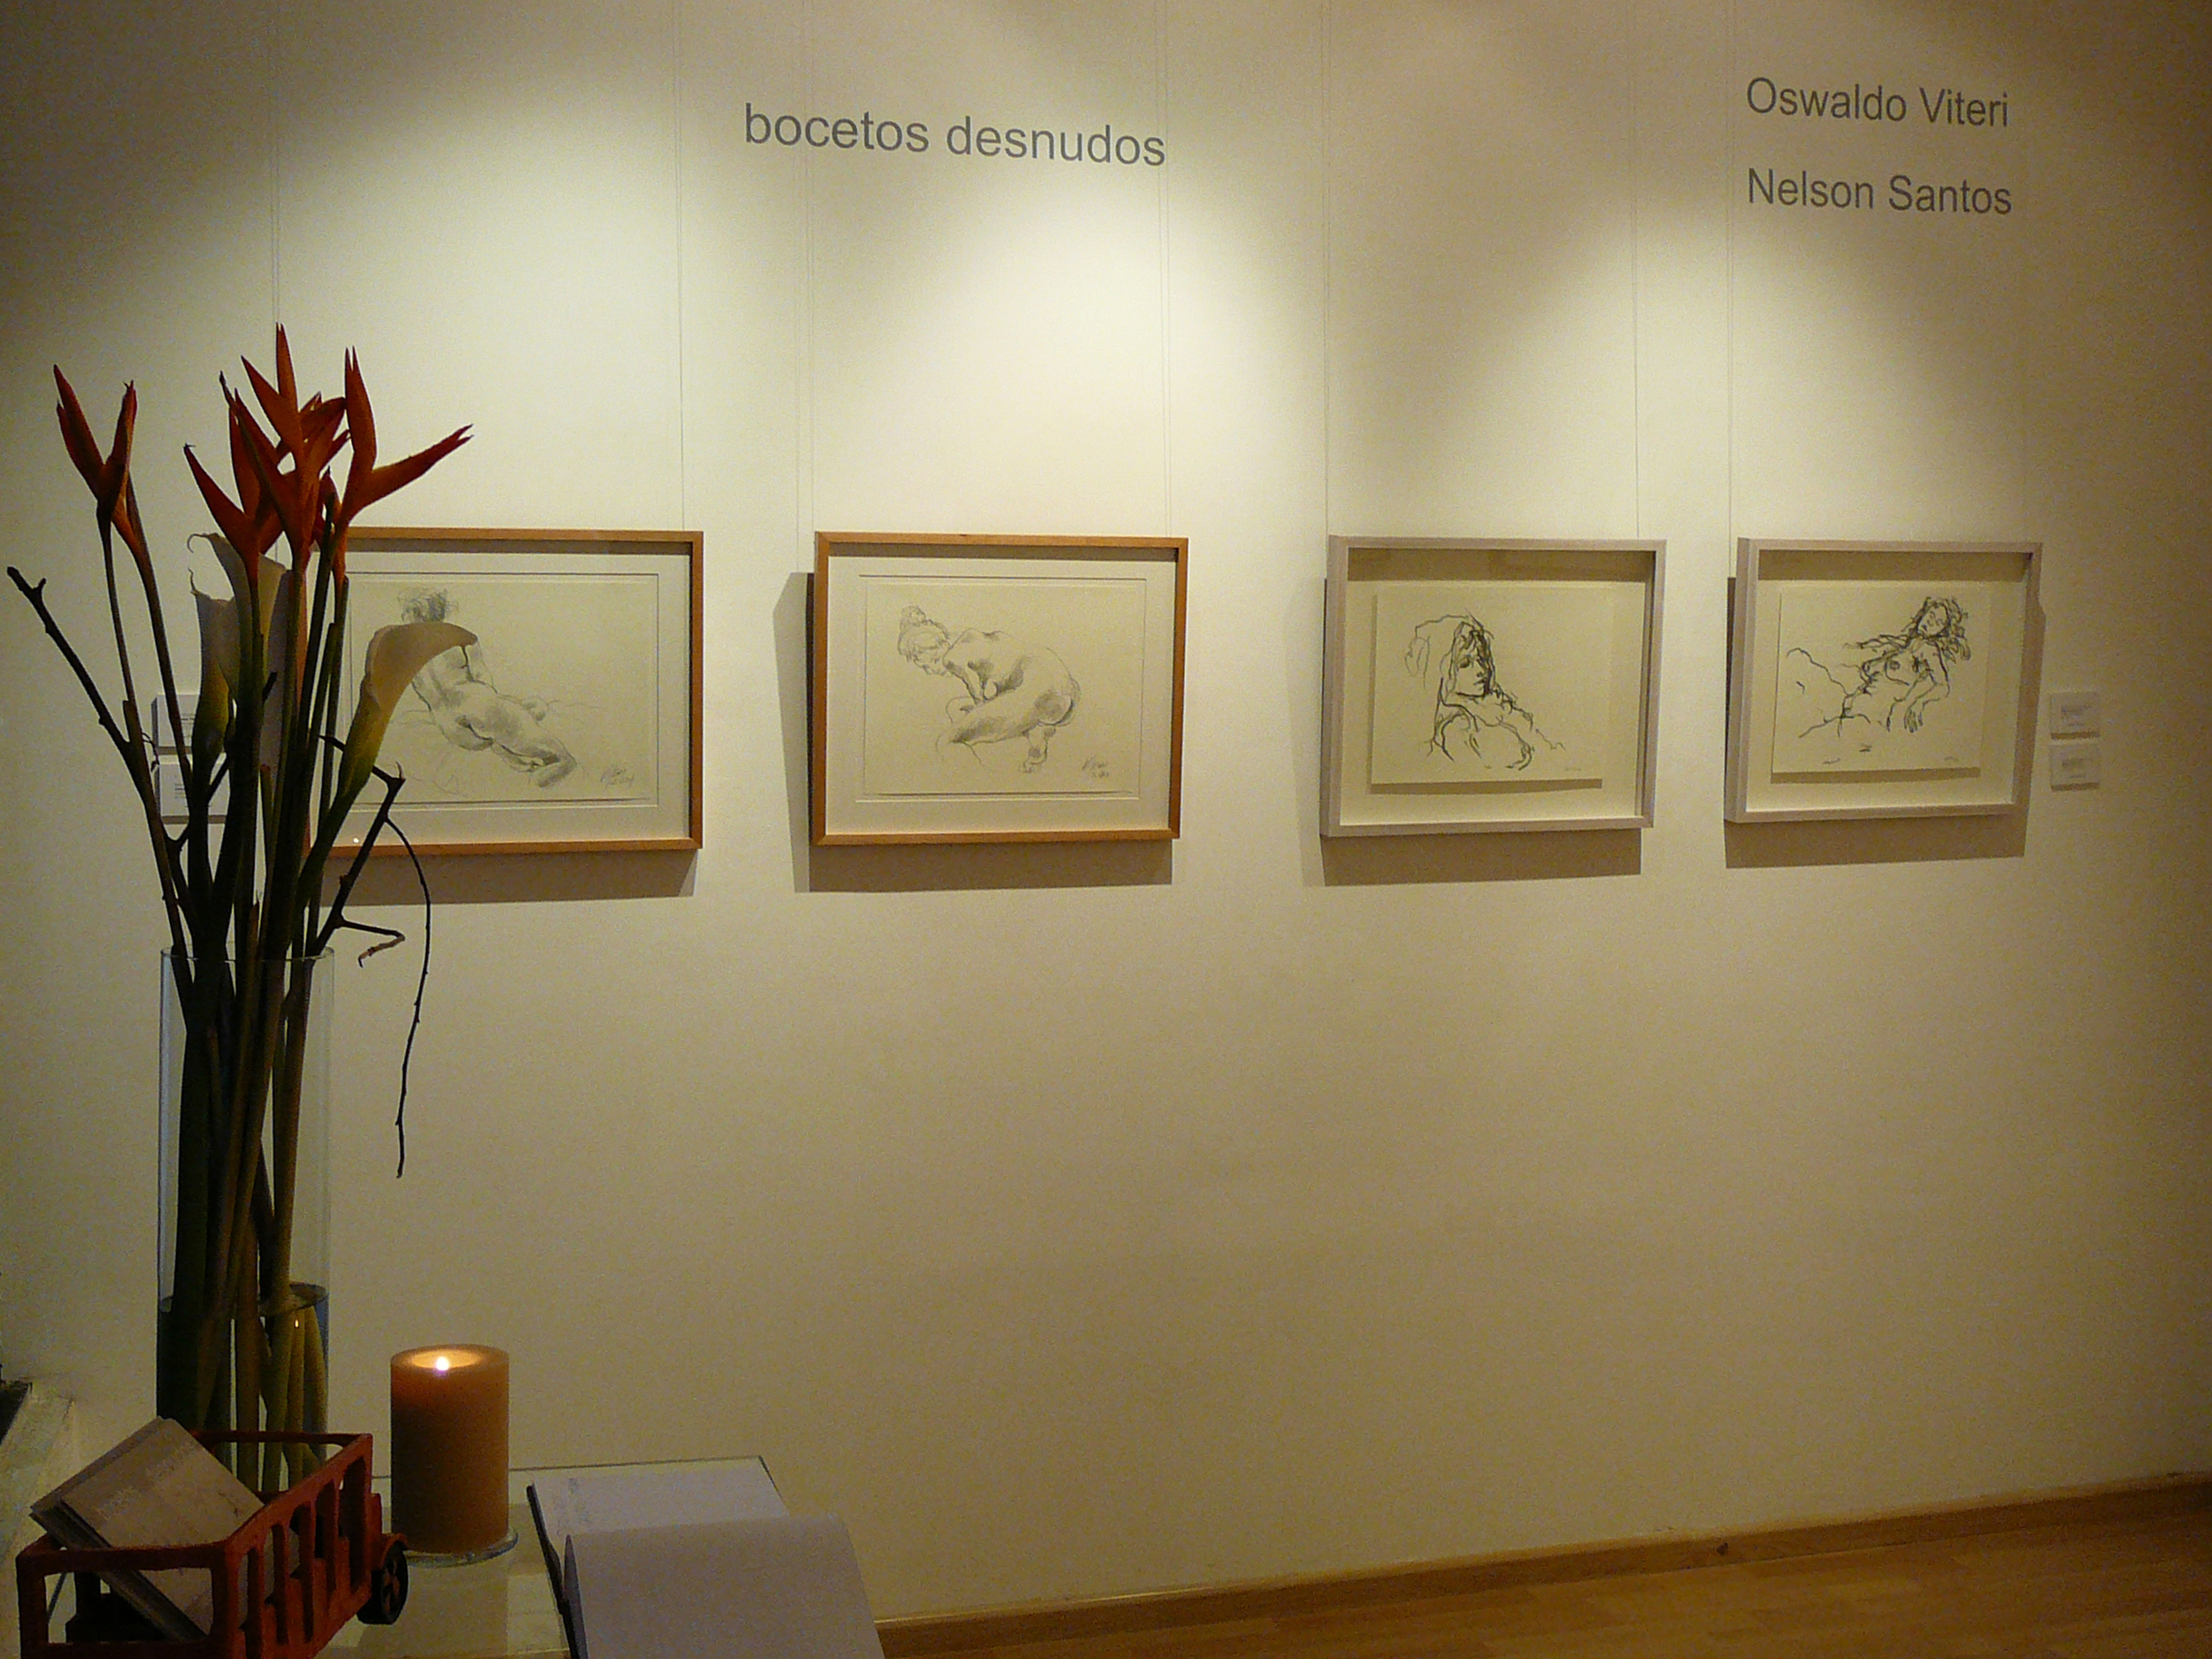 Expo bocetos desnudos oct 2014 011.JPG